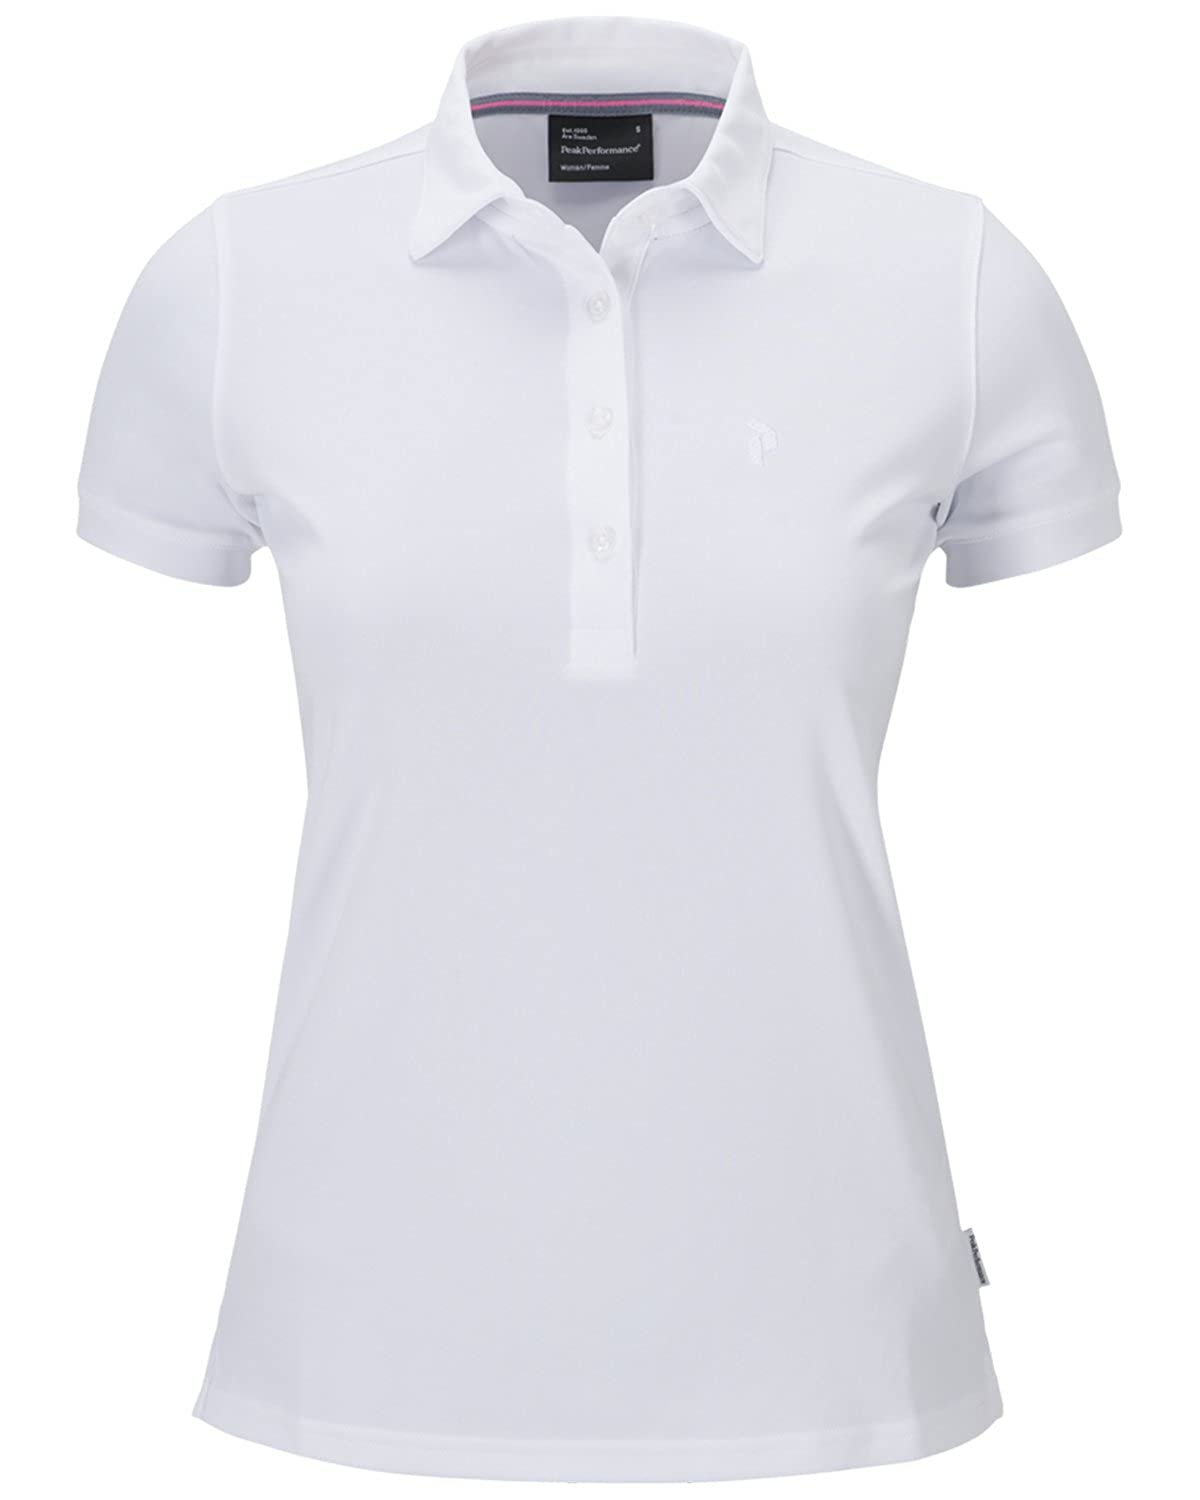 Peak Performance W Golf elsham Polo White: Amazon.es: Ropa y ...